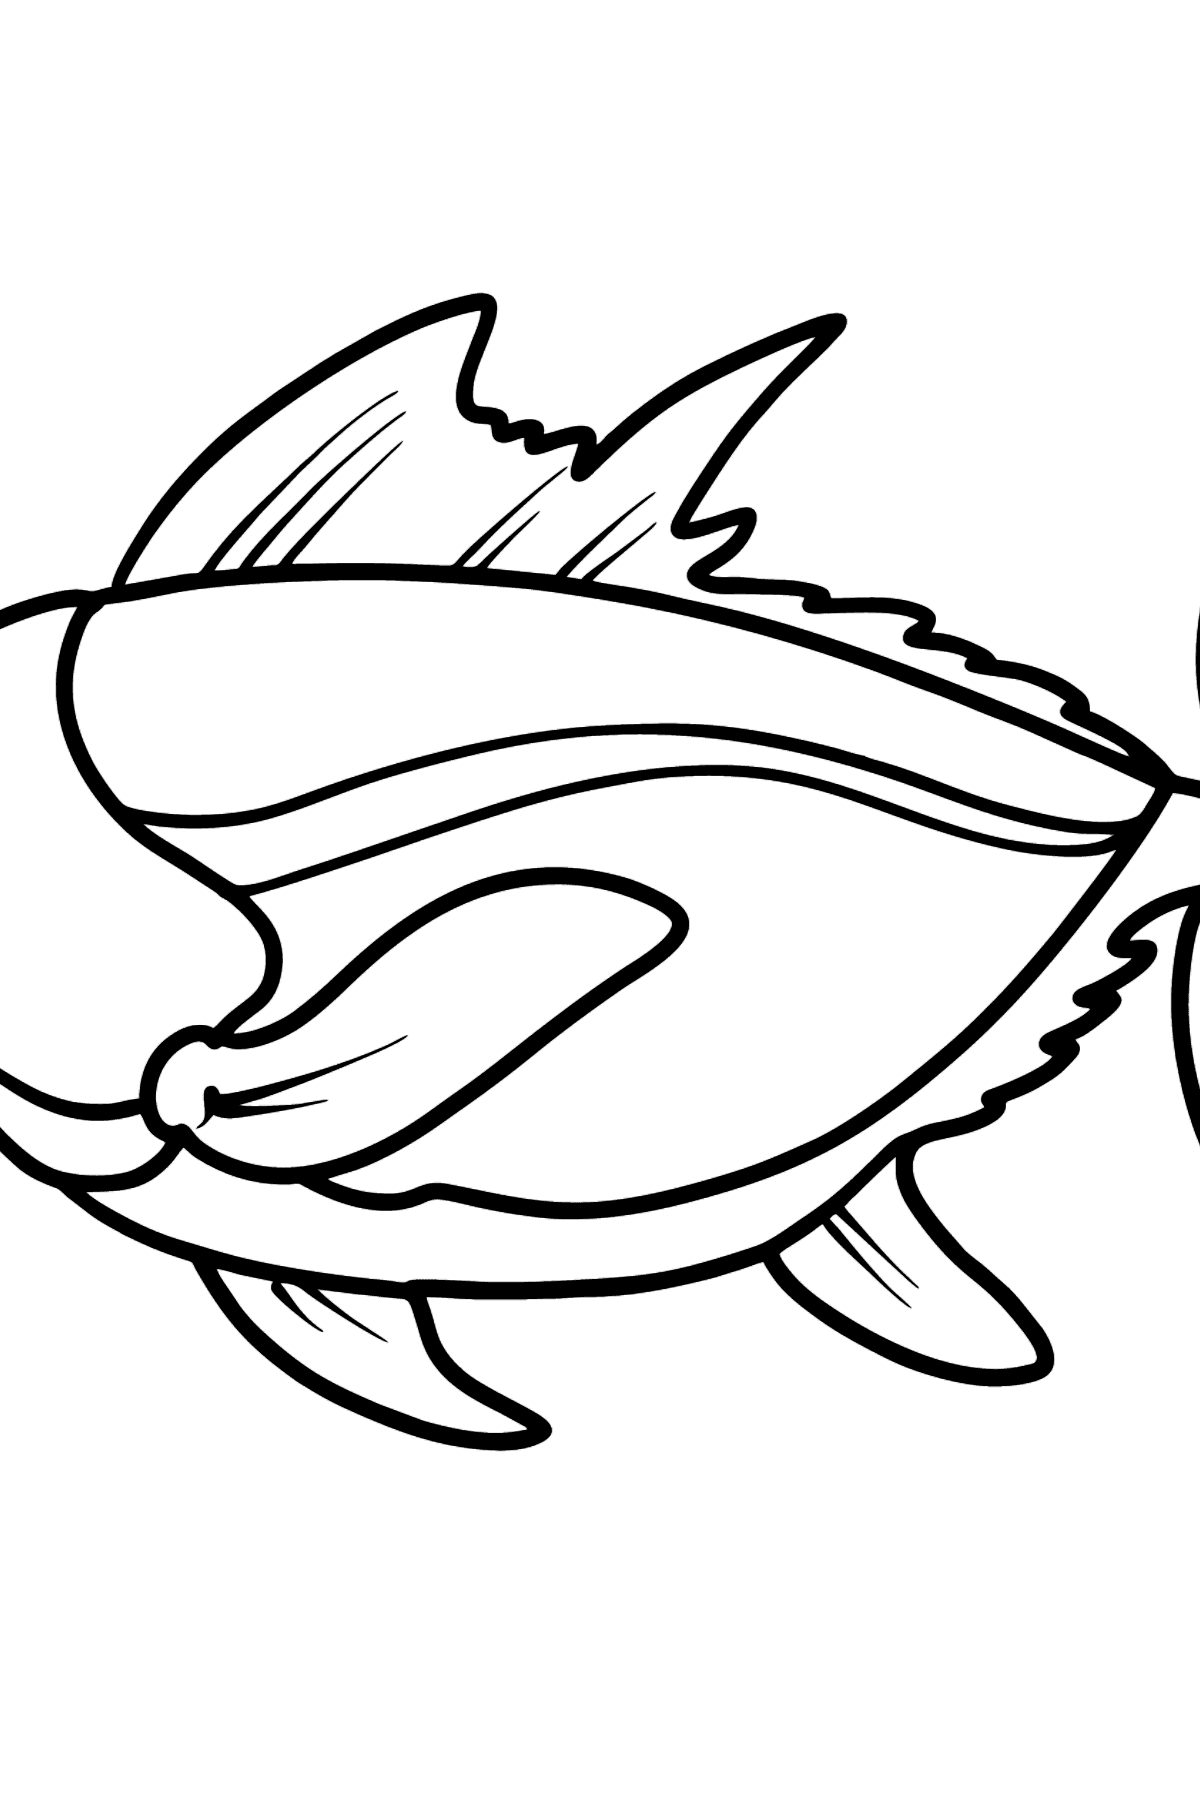 Tuna coloring page - Coloring Pages for Kids